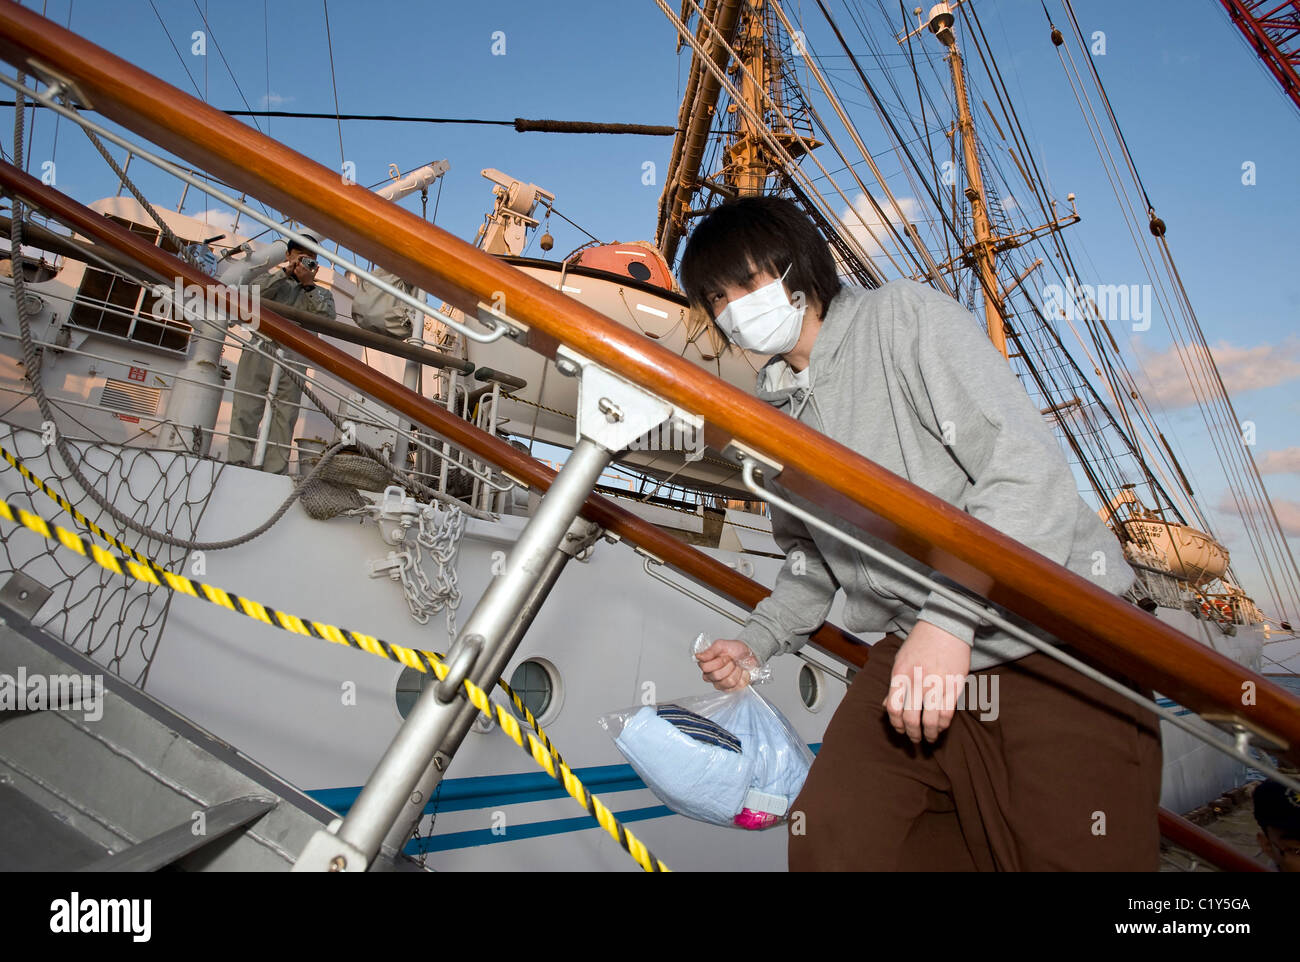 A member of the so-called Fukushima 50 boarding the Kaiwomaru - Stock Image